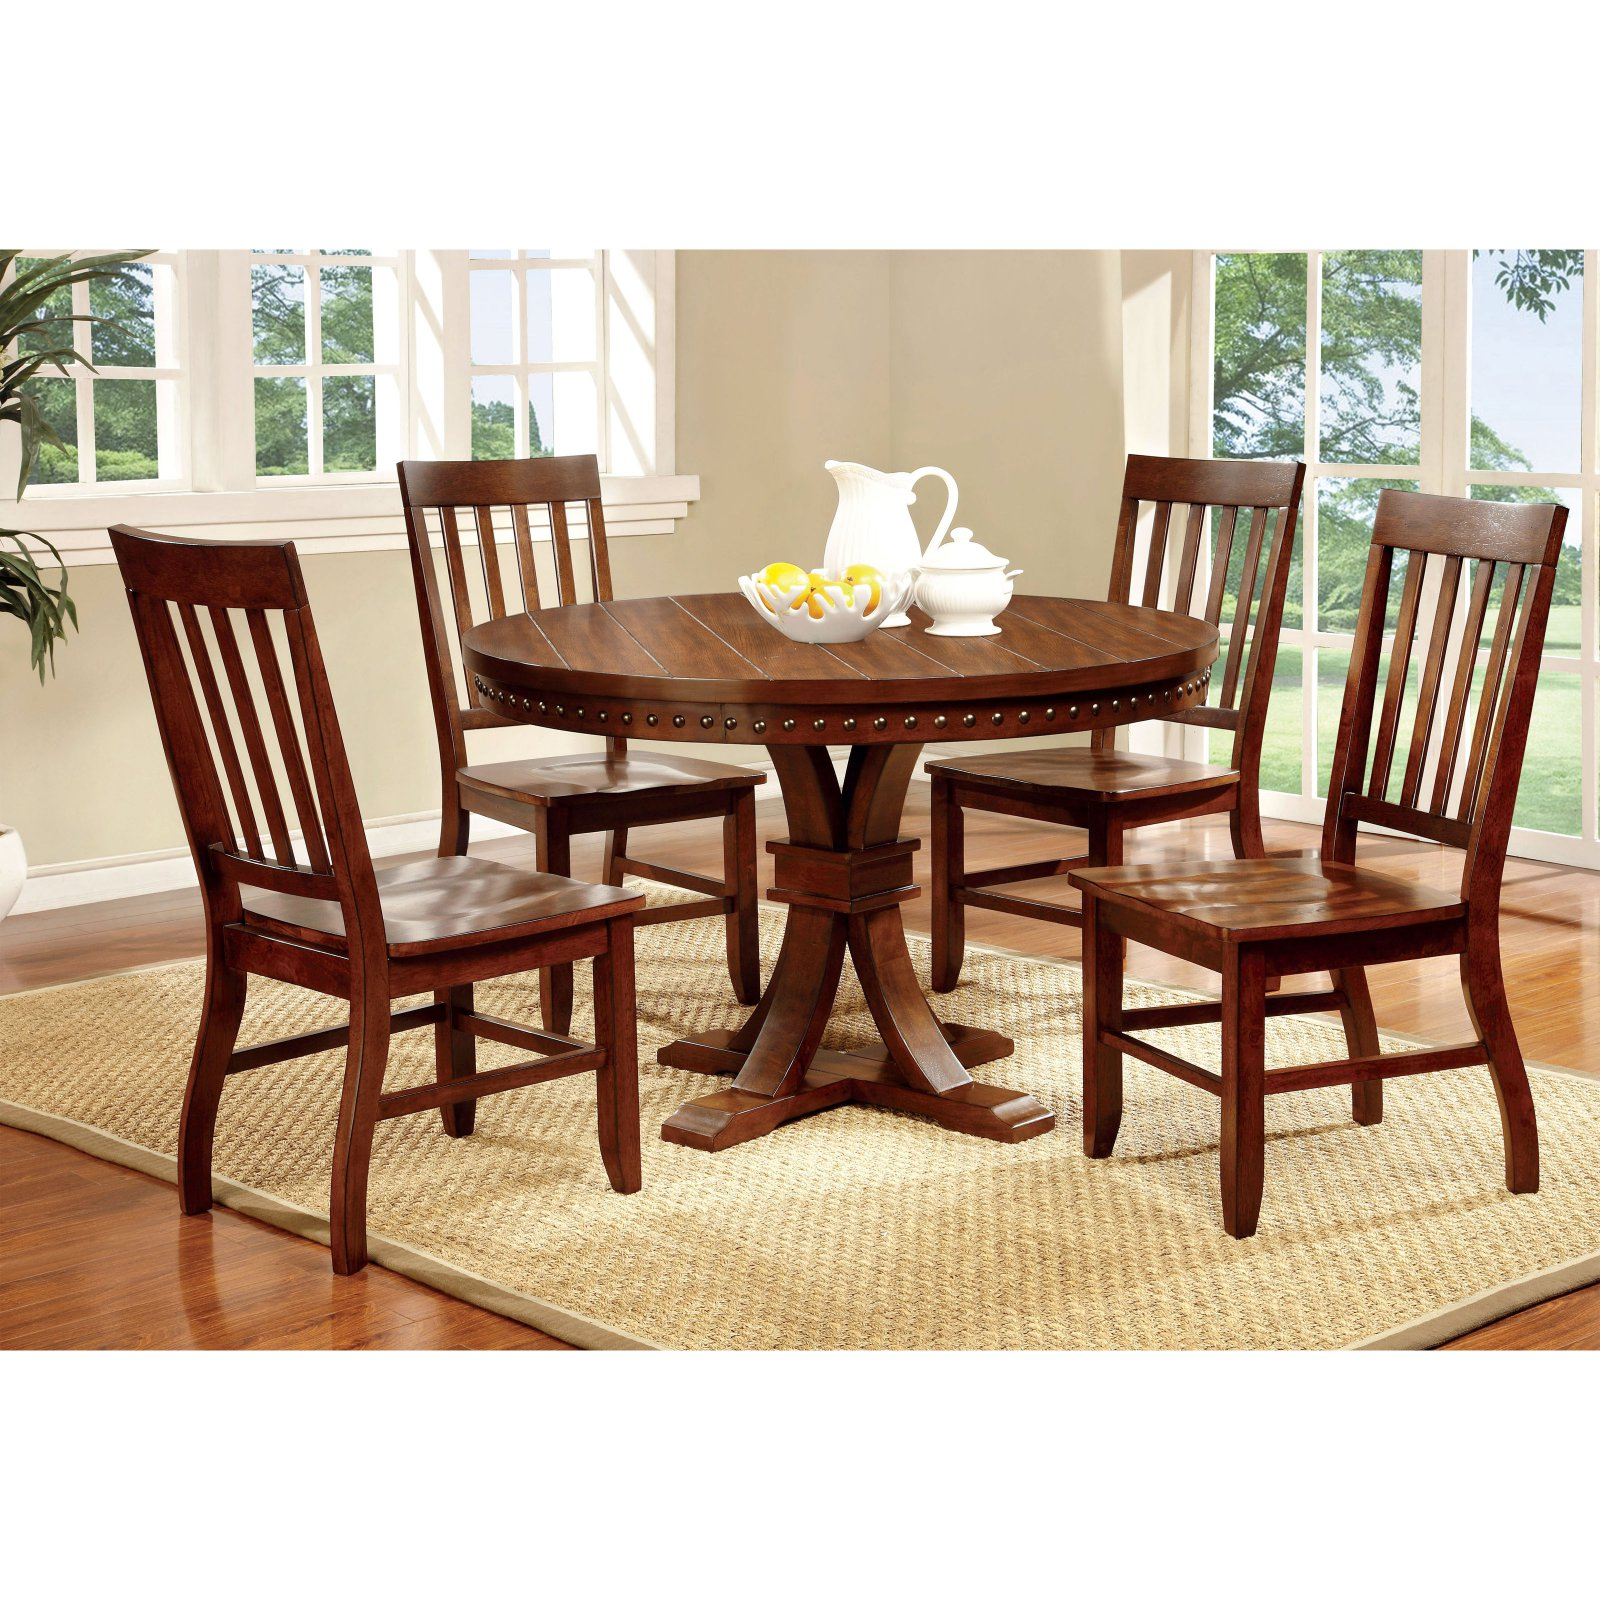 Furniture of America Fort Wooden Round Dining Table